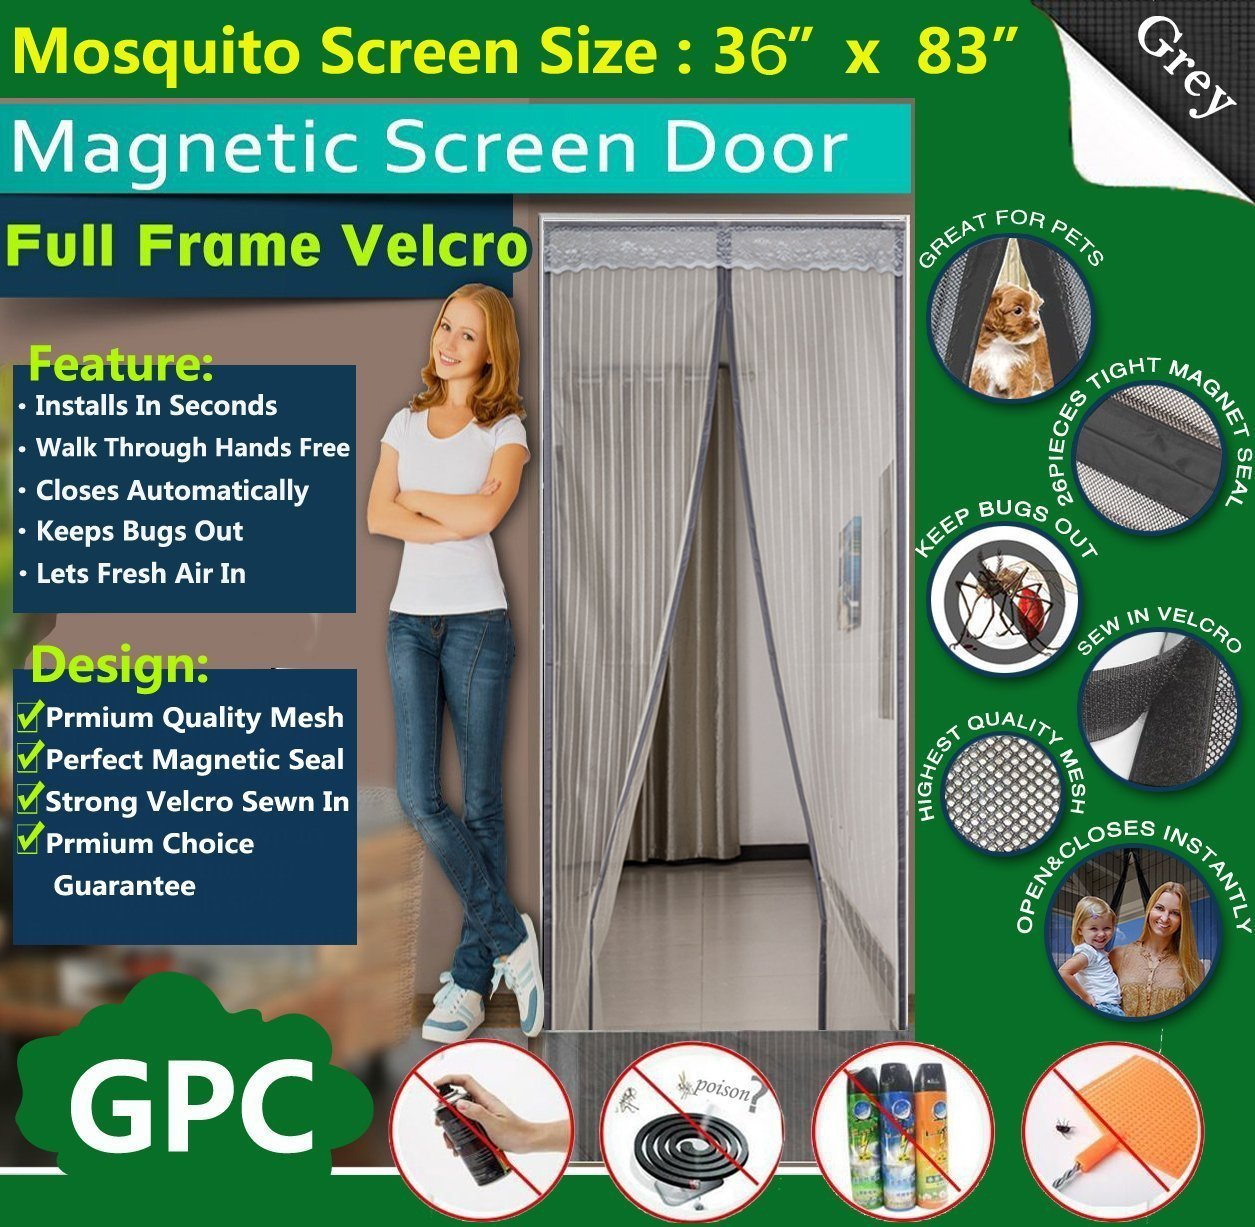 Queen Rose Magnetic Fly Screen Door Net - Full Frame Design, Fits Door Up To 34' x 82'(Gray) Fits Door Up To 34 x 82( Gray)